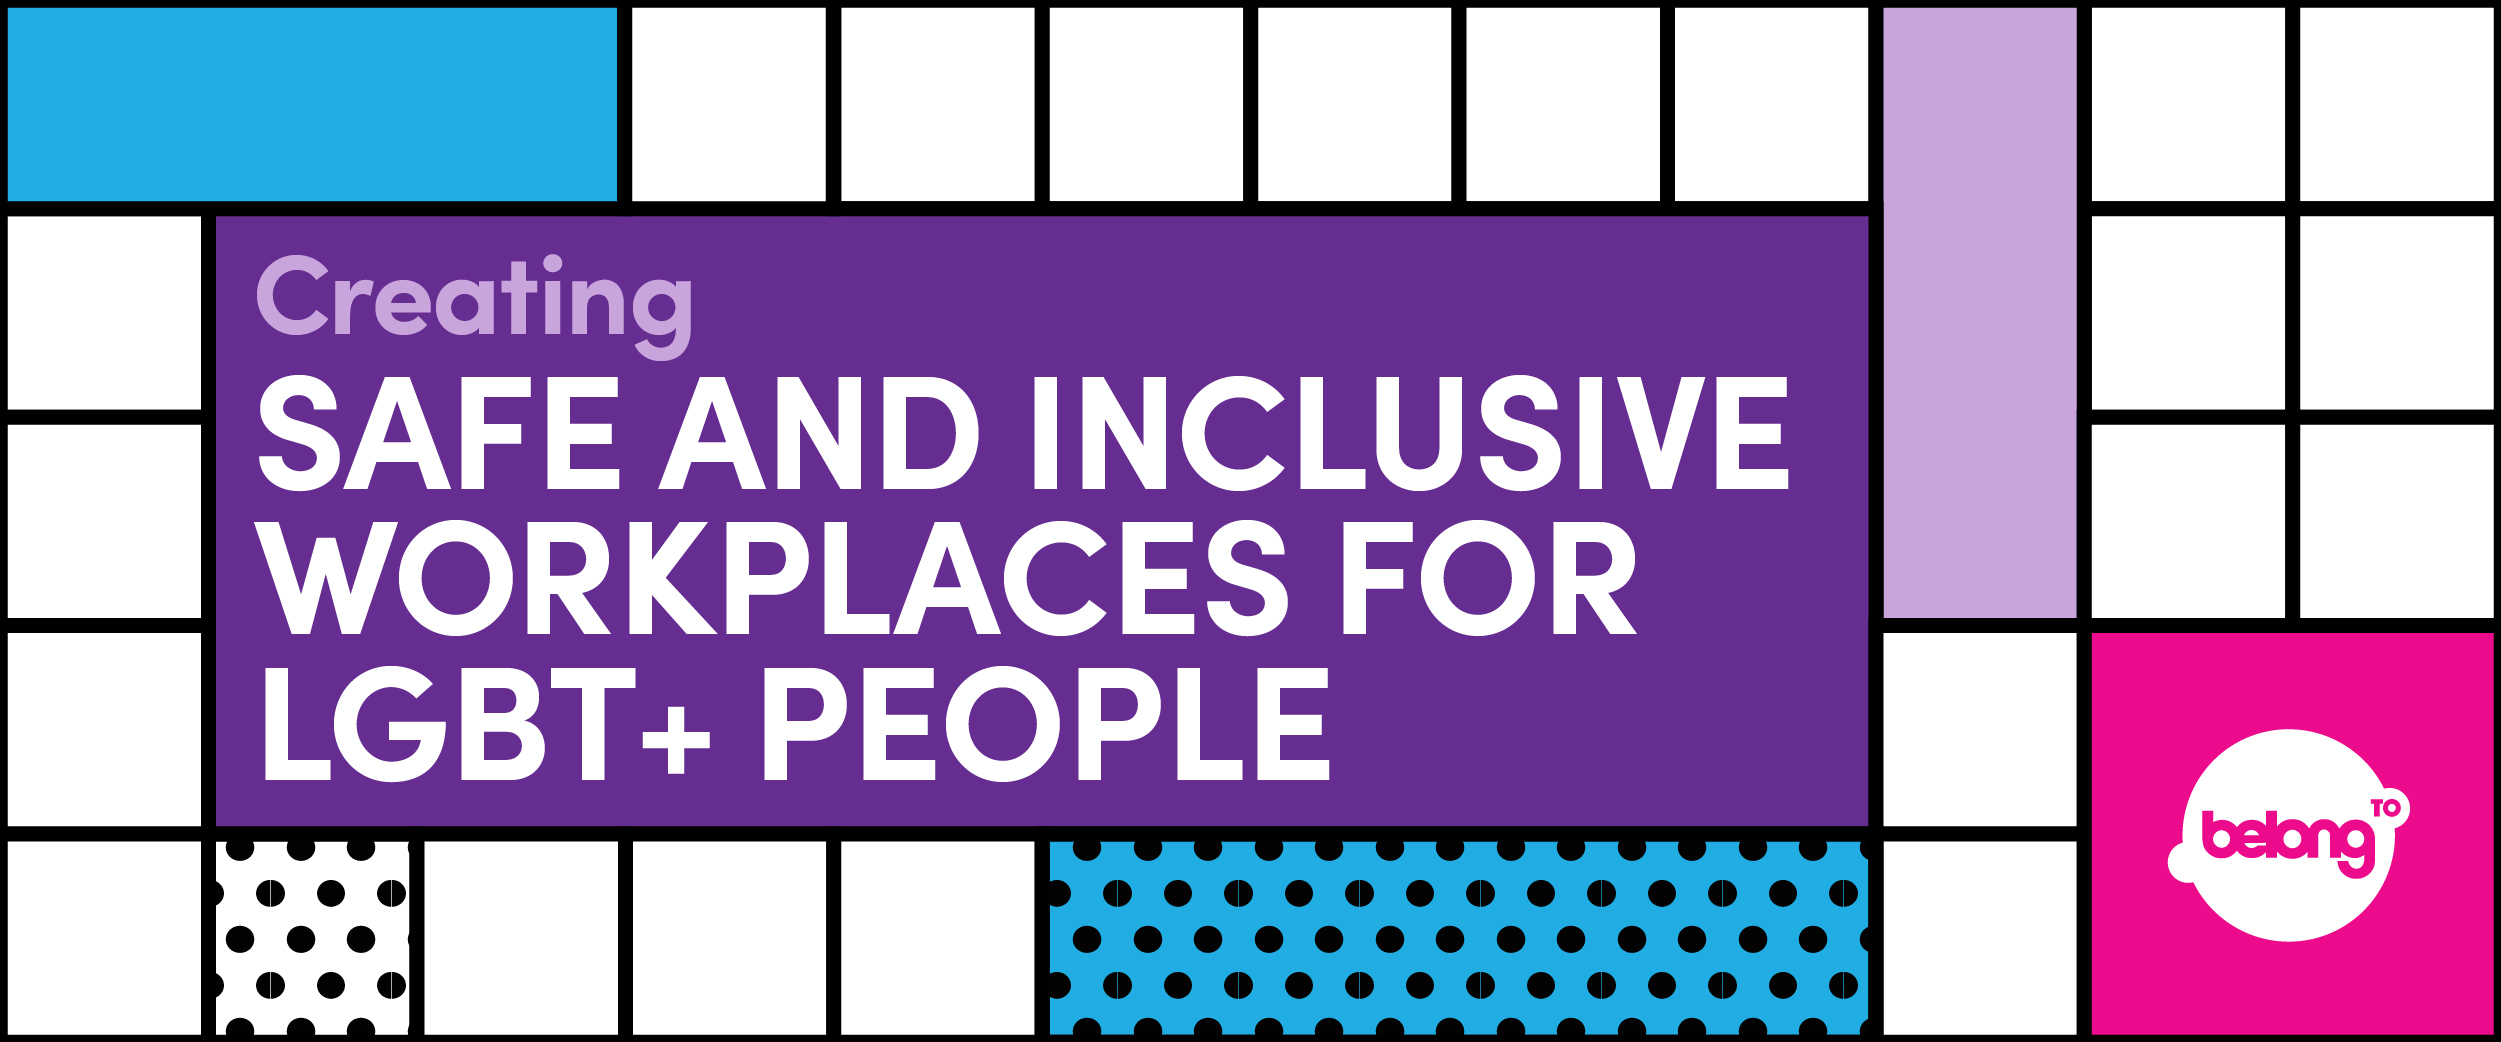 Creating Safe and Inclusive Workplaces for LGBT+ People